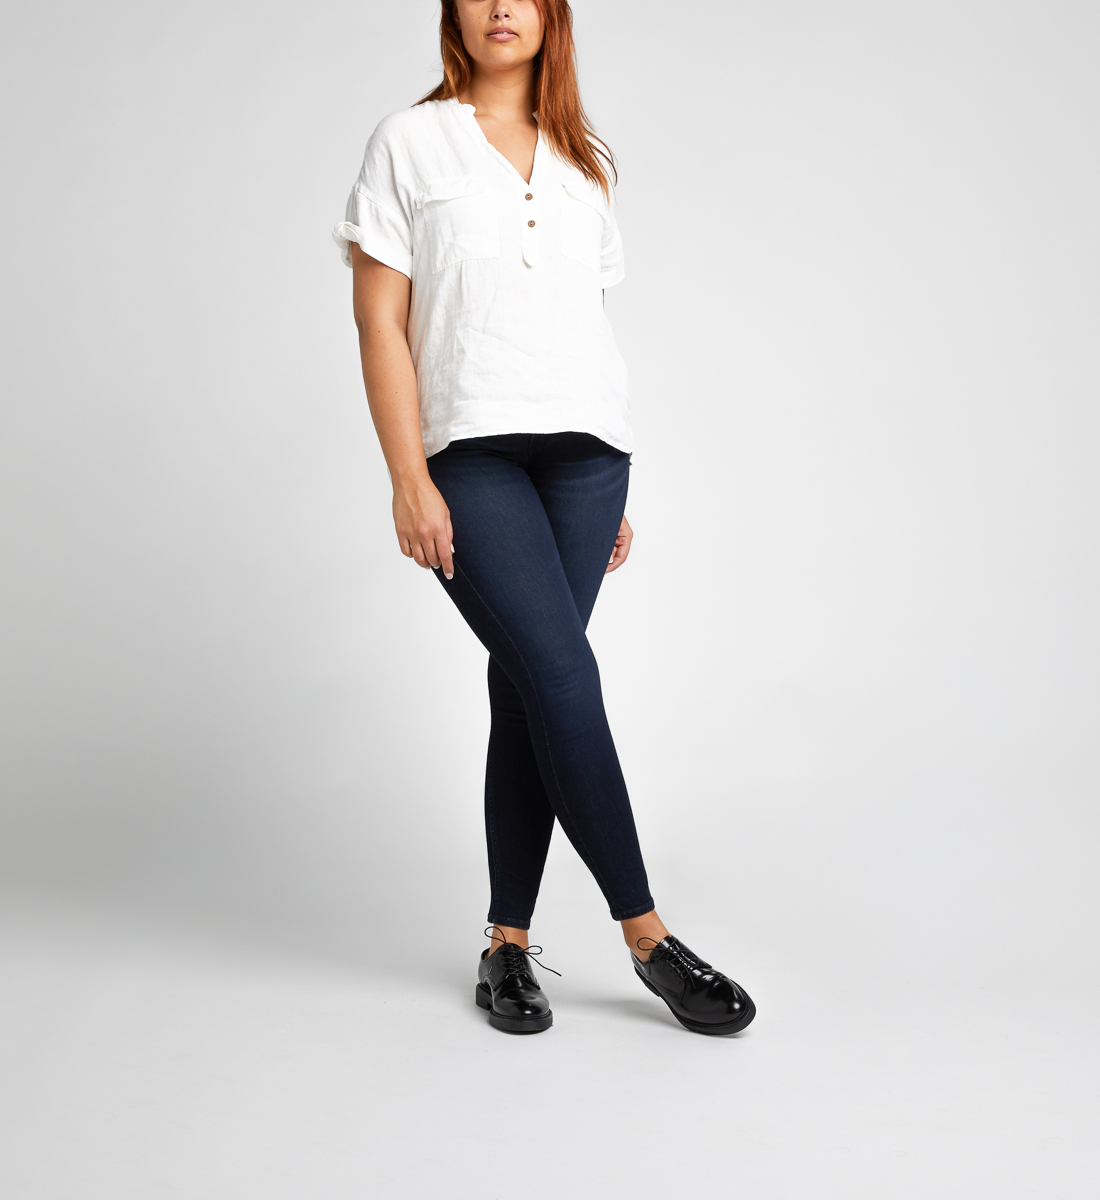 Mazy High Rise Skinny Leg Jeans Final Sale Alt Image 1